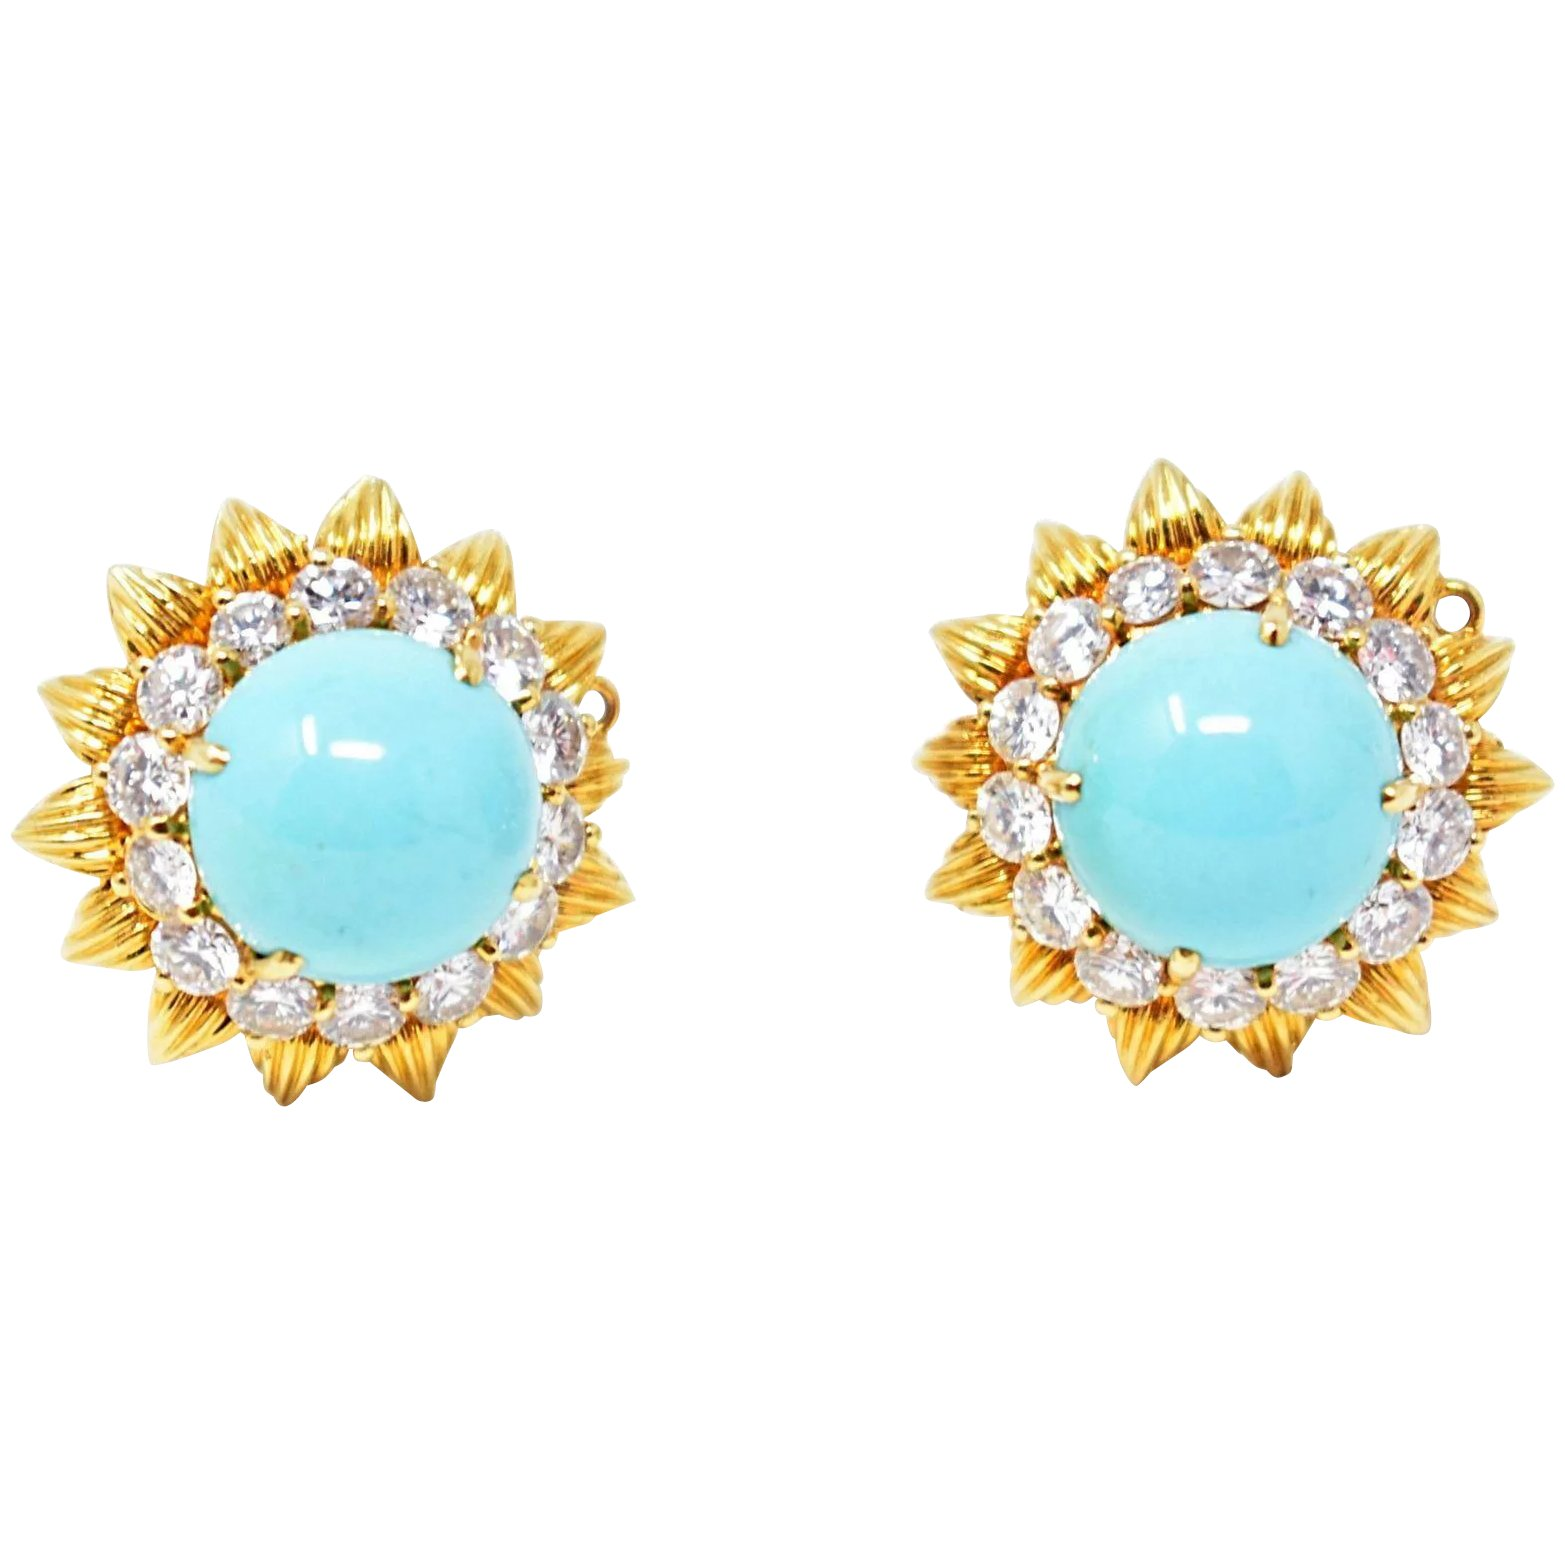 Flirty Vintage 18k Gold Turquoise Diamond Earrings Wilson S